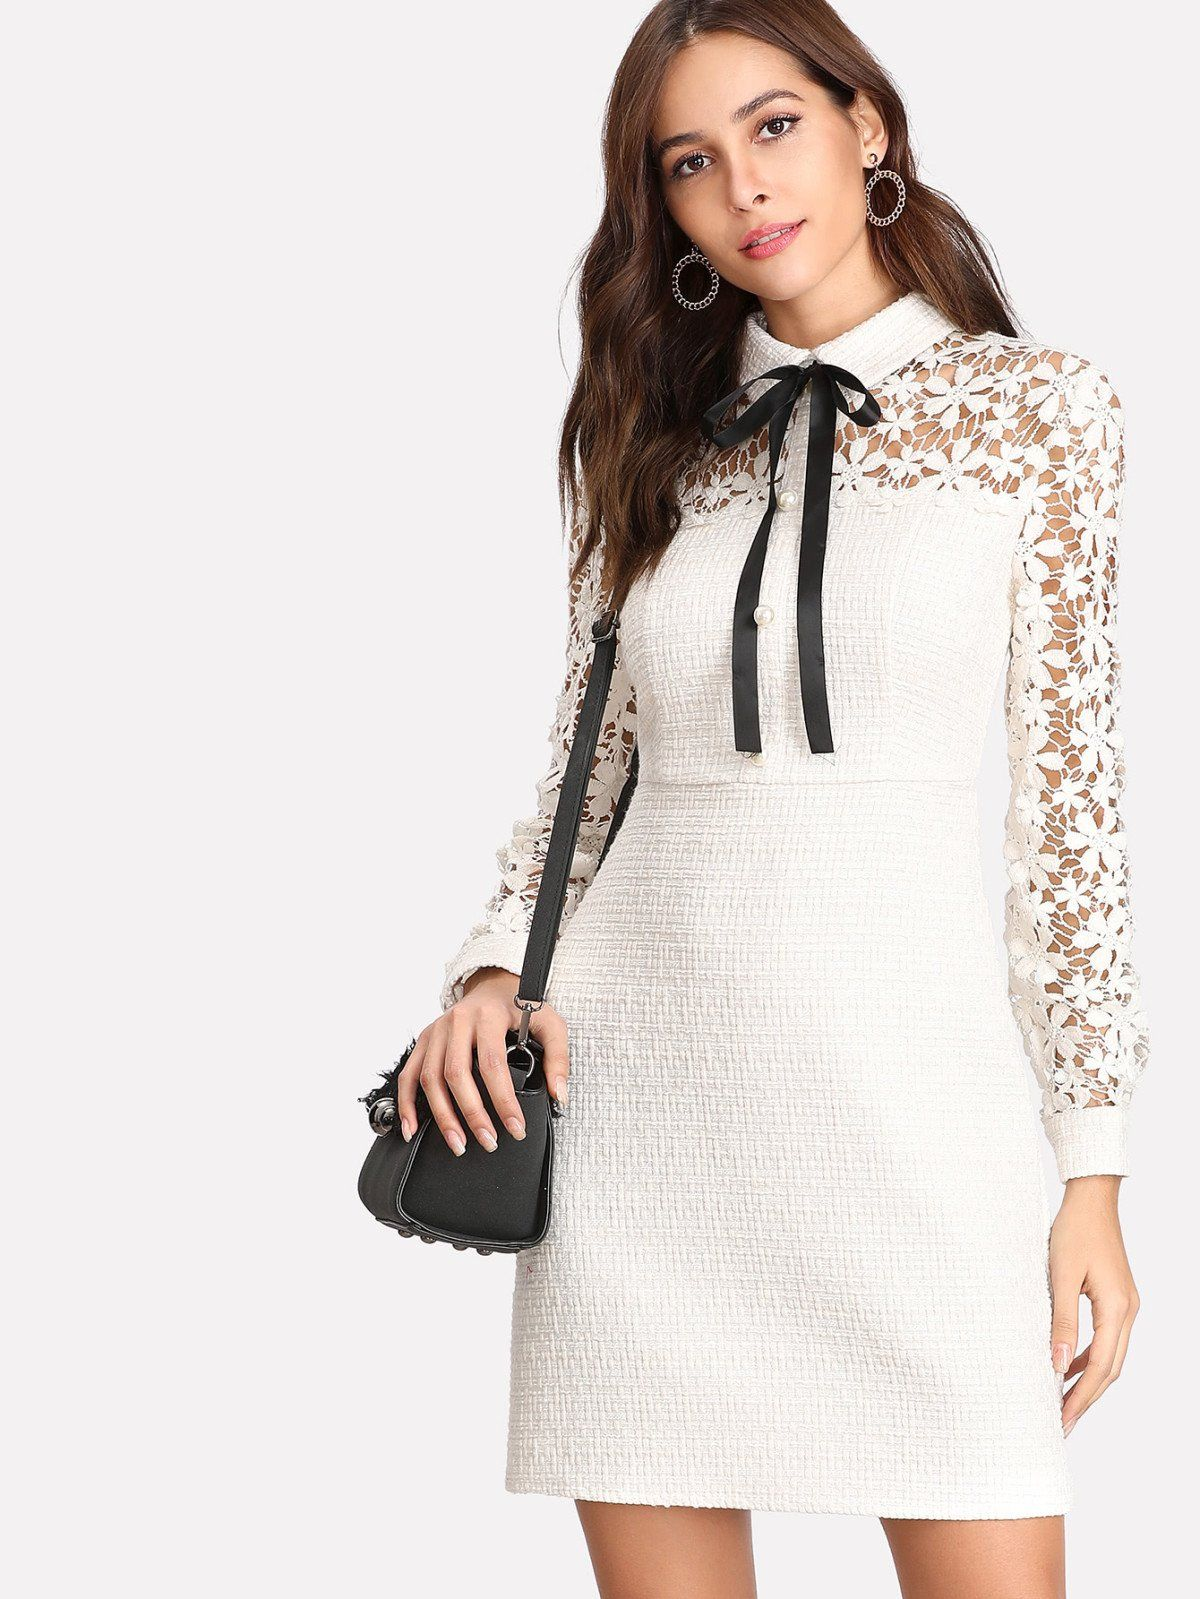 Long sleeve dresses short pencil decorated with pearls sheer